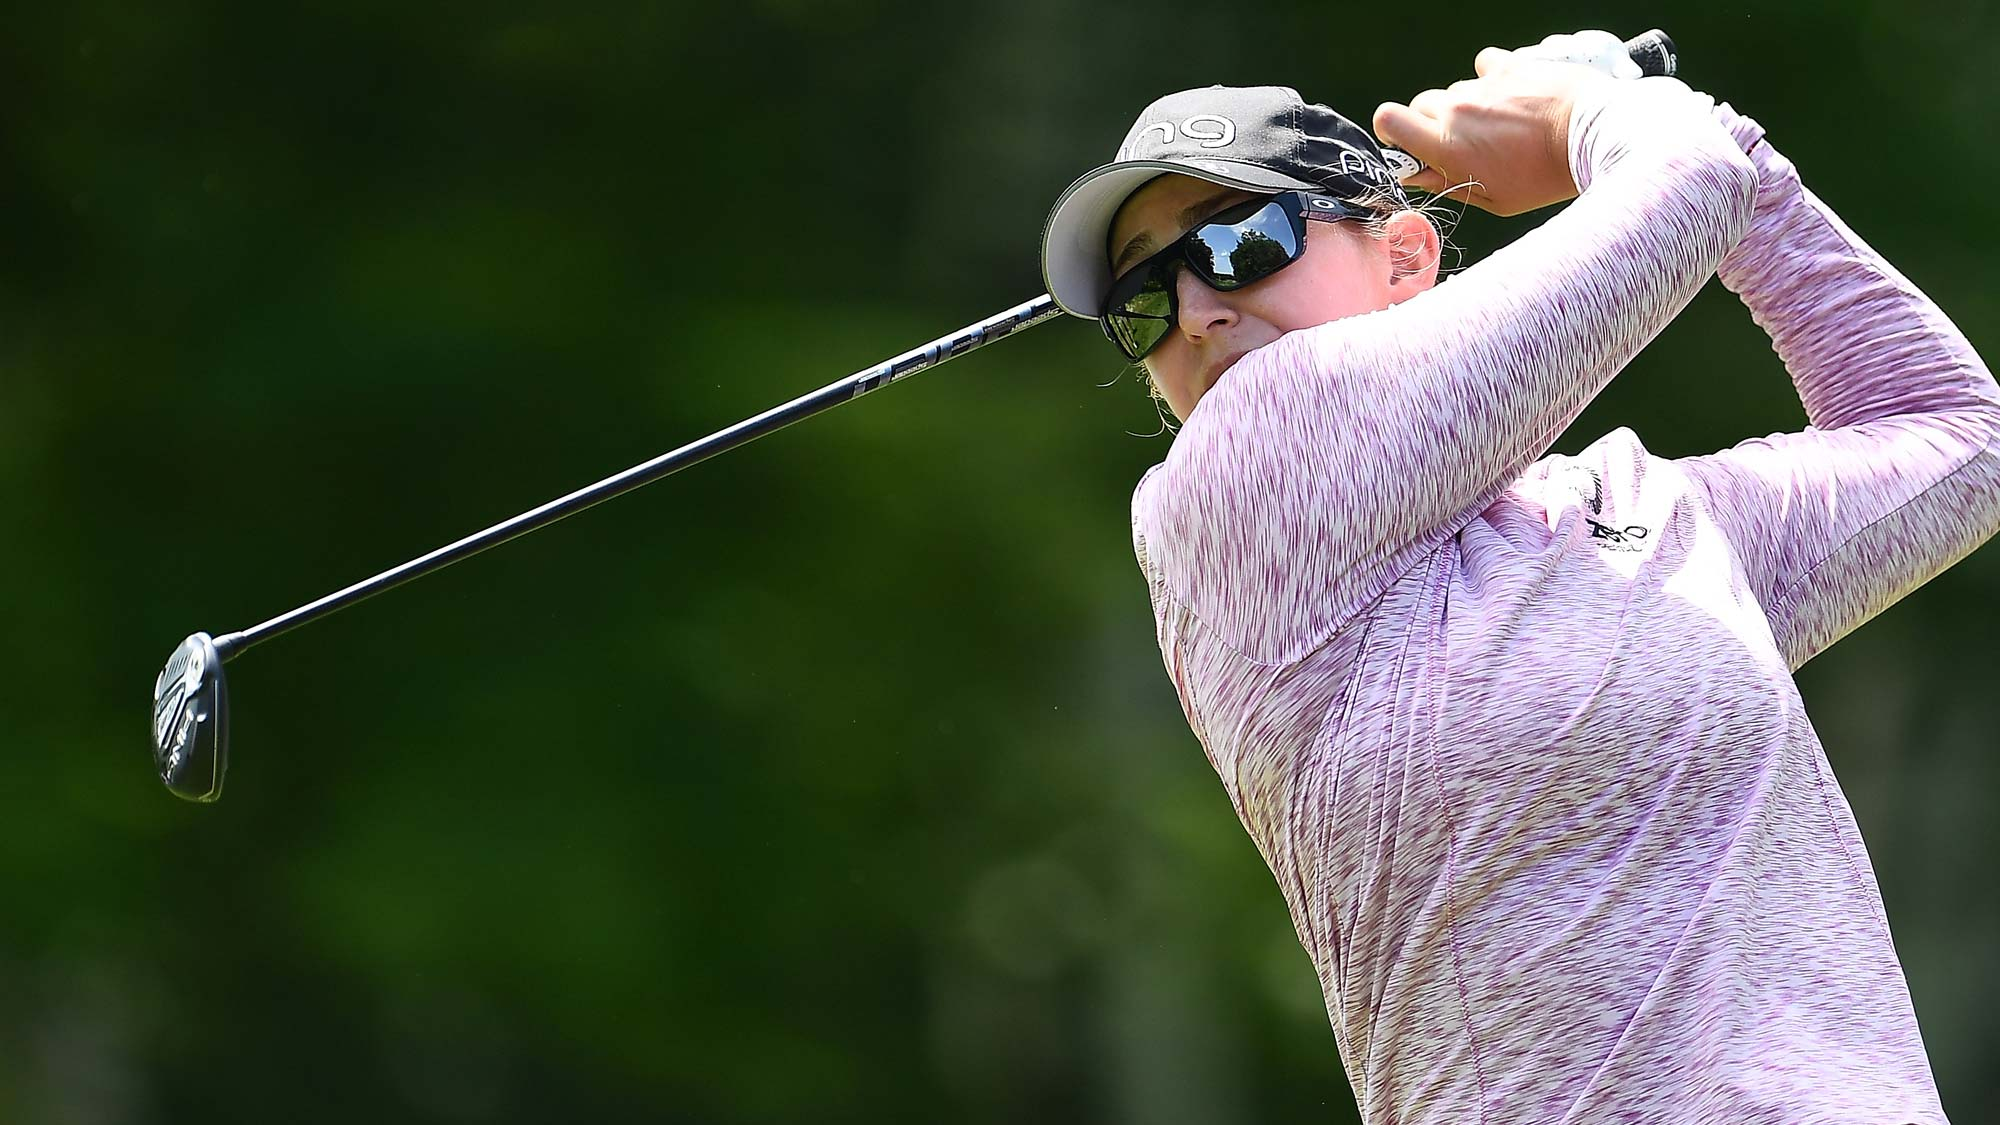 Elizabeth Szokol hits her tee shot on the 18th hole during the first round of the Thornberry Creek LPGA Classic